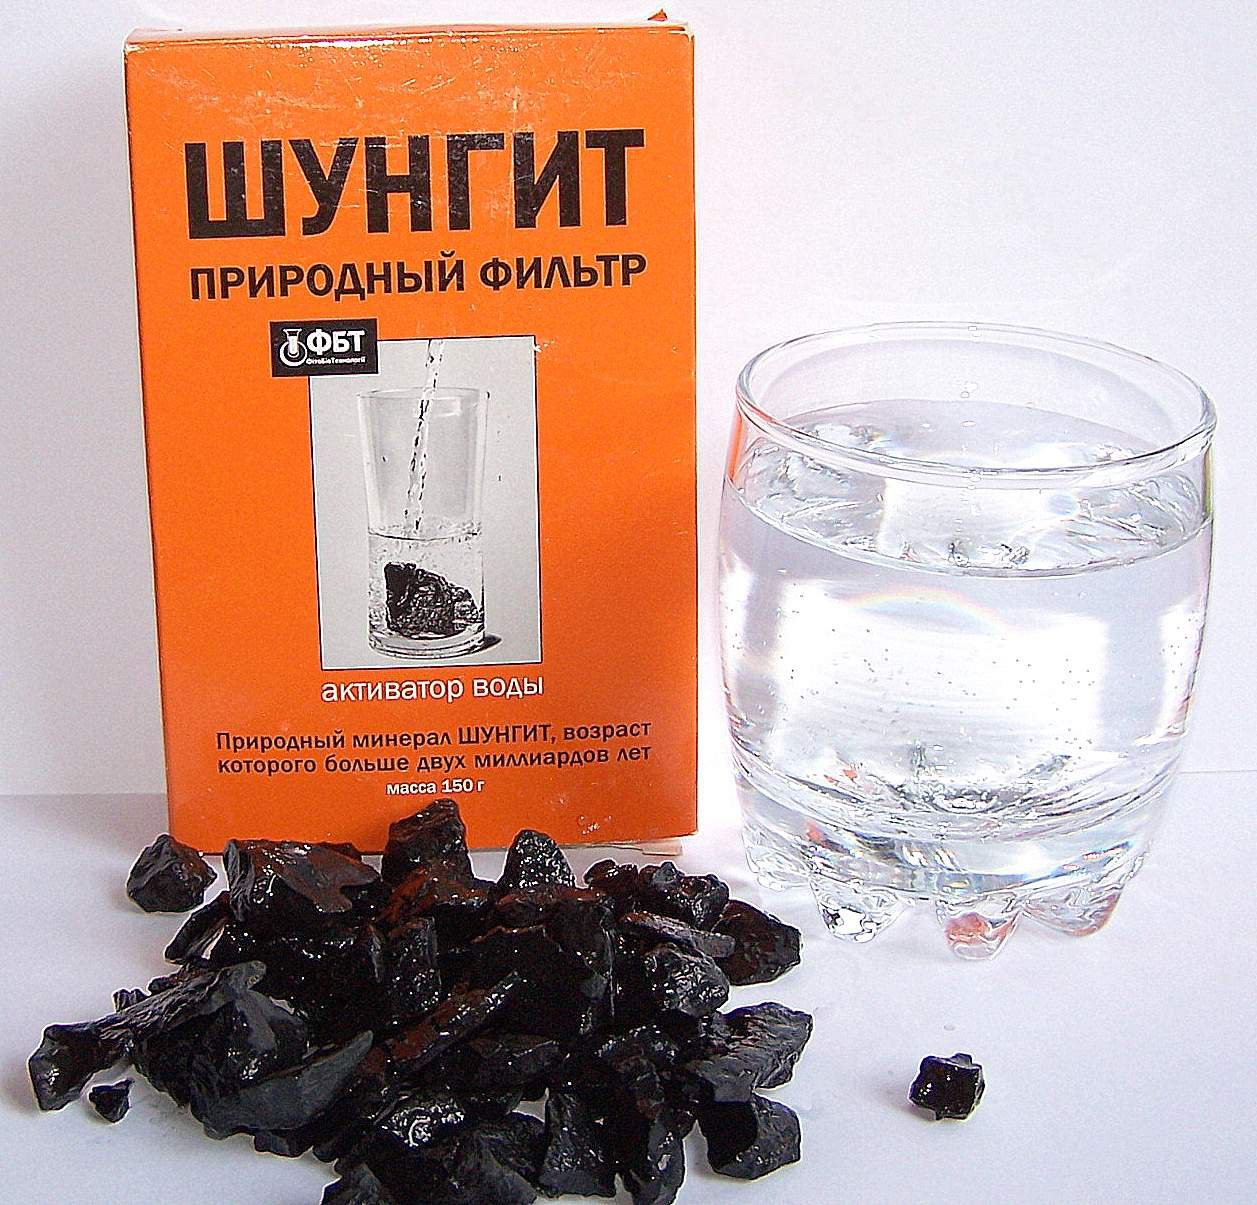 SHUNGITE UNIQUE NATURAL WATER CLEANER, HEALING STONE 0.15kg 0.33Lbs